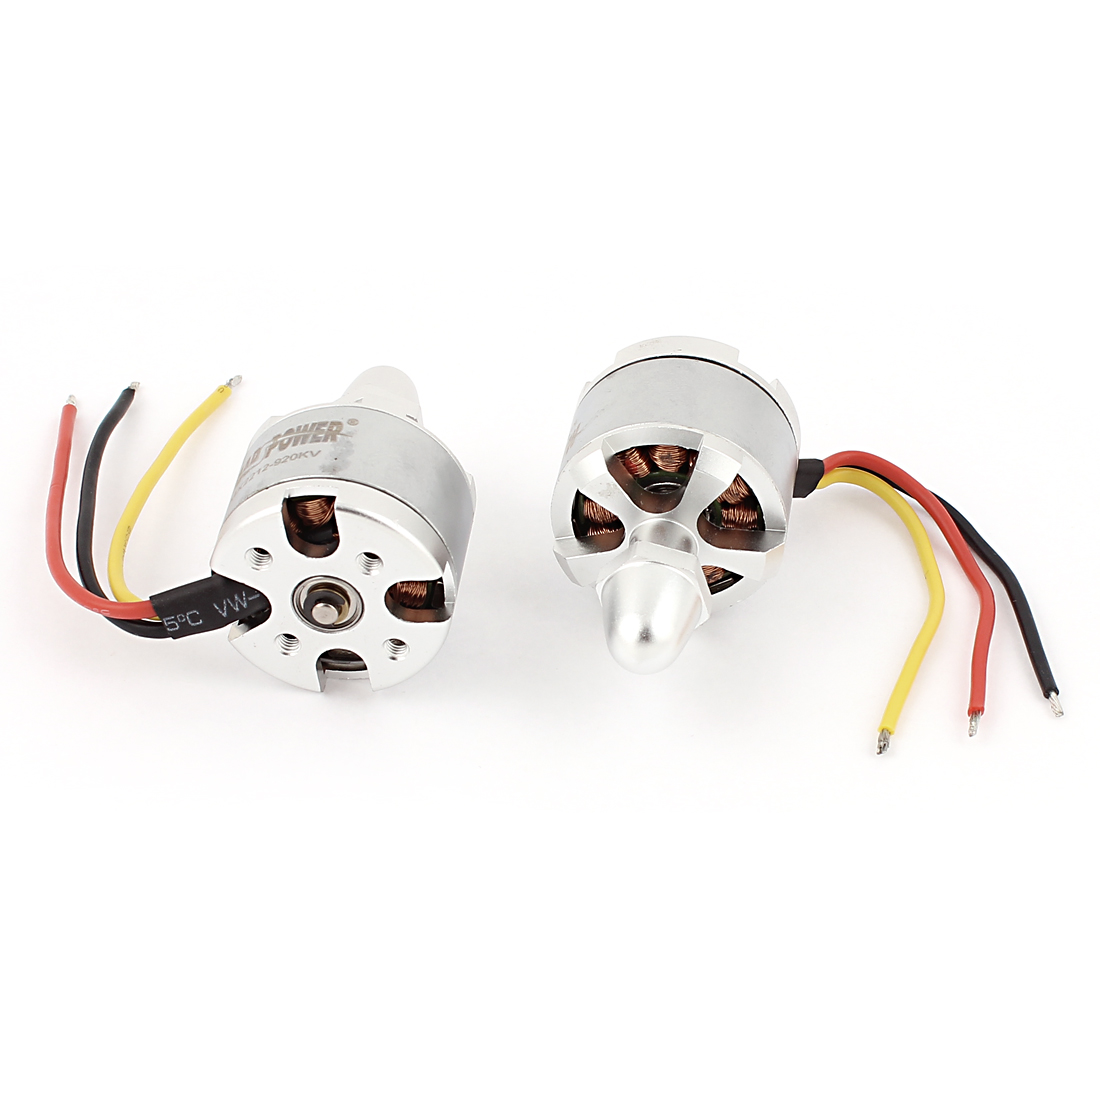 2PCS MX2212 920KV Brushless Motor CW for DJI Phantom Multirotor F330 F450 F550 X525